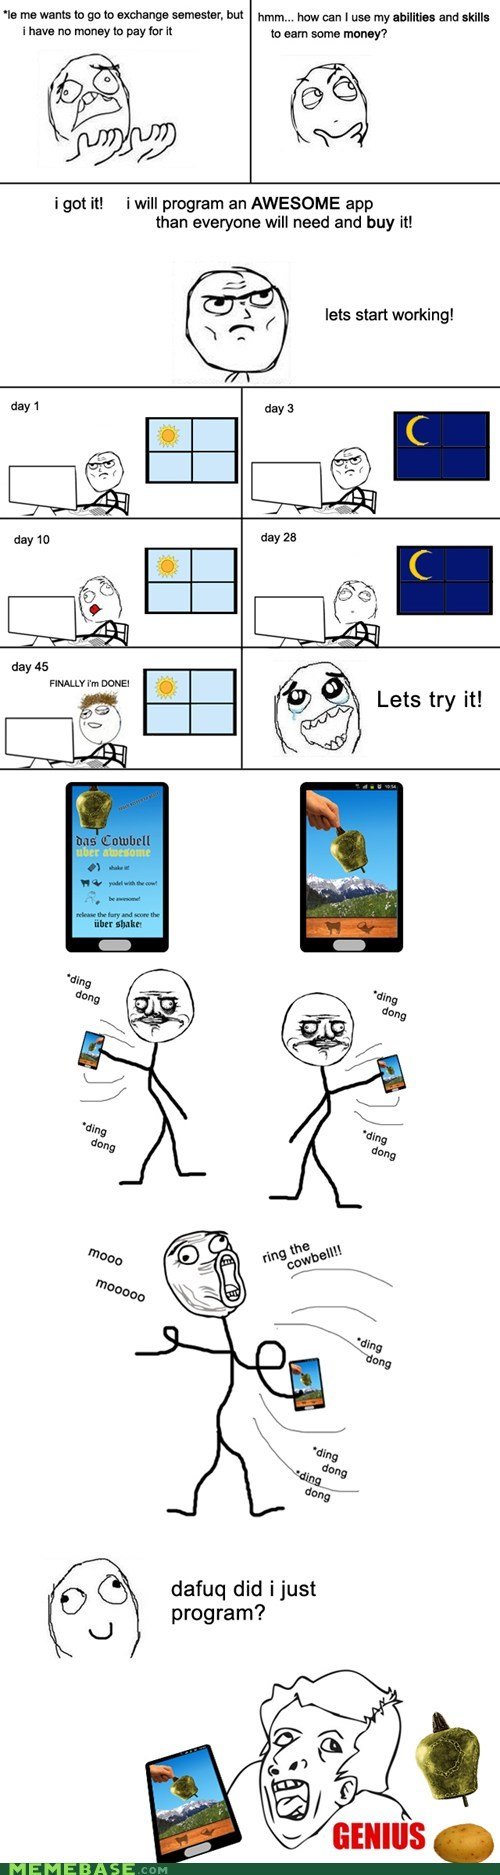 App dance fruit genius program Rage Comics skills - 6255877376